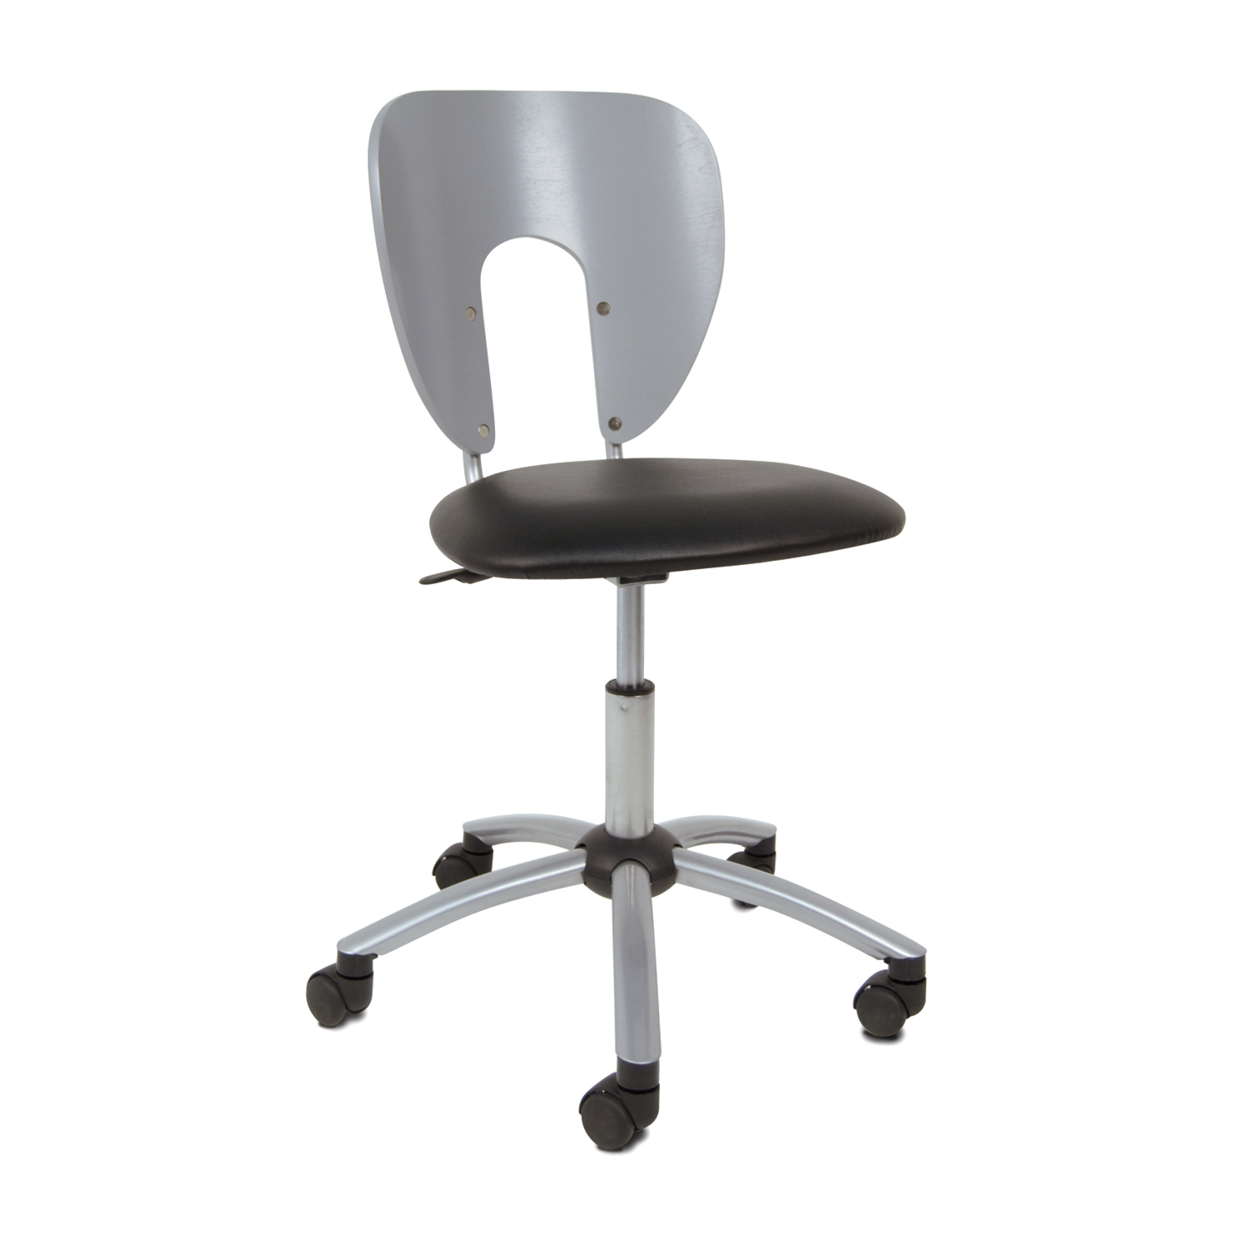 Studio Designs Home Office Futura Chair - Silver